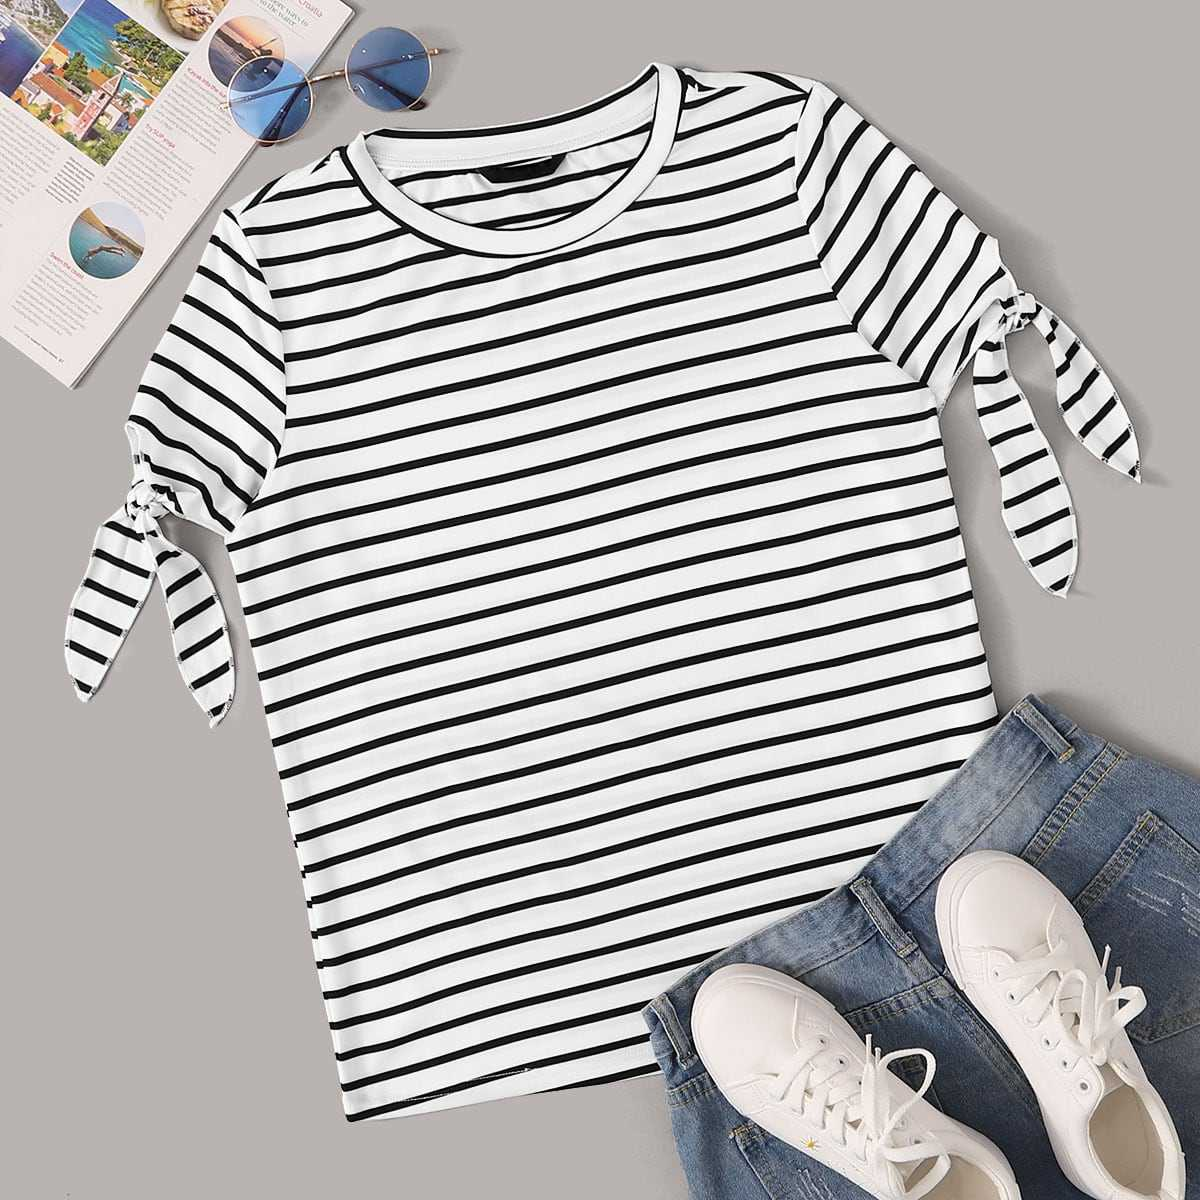 Knot Cuff Striped Tee in Black and White by ROMWE on GOOFASH